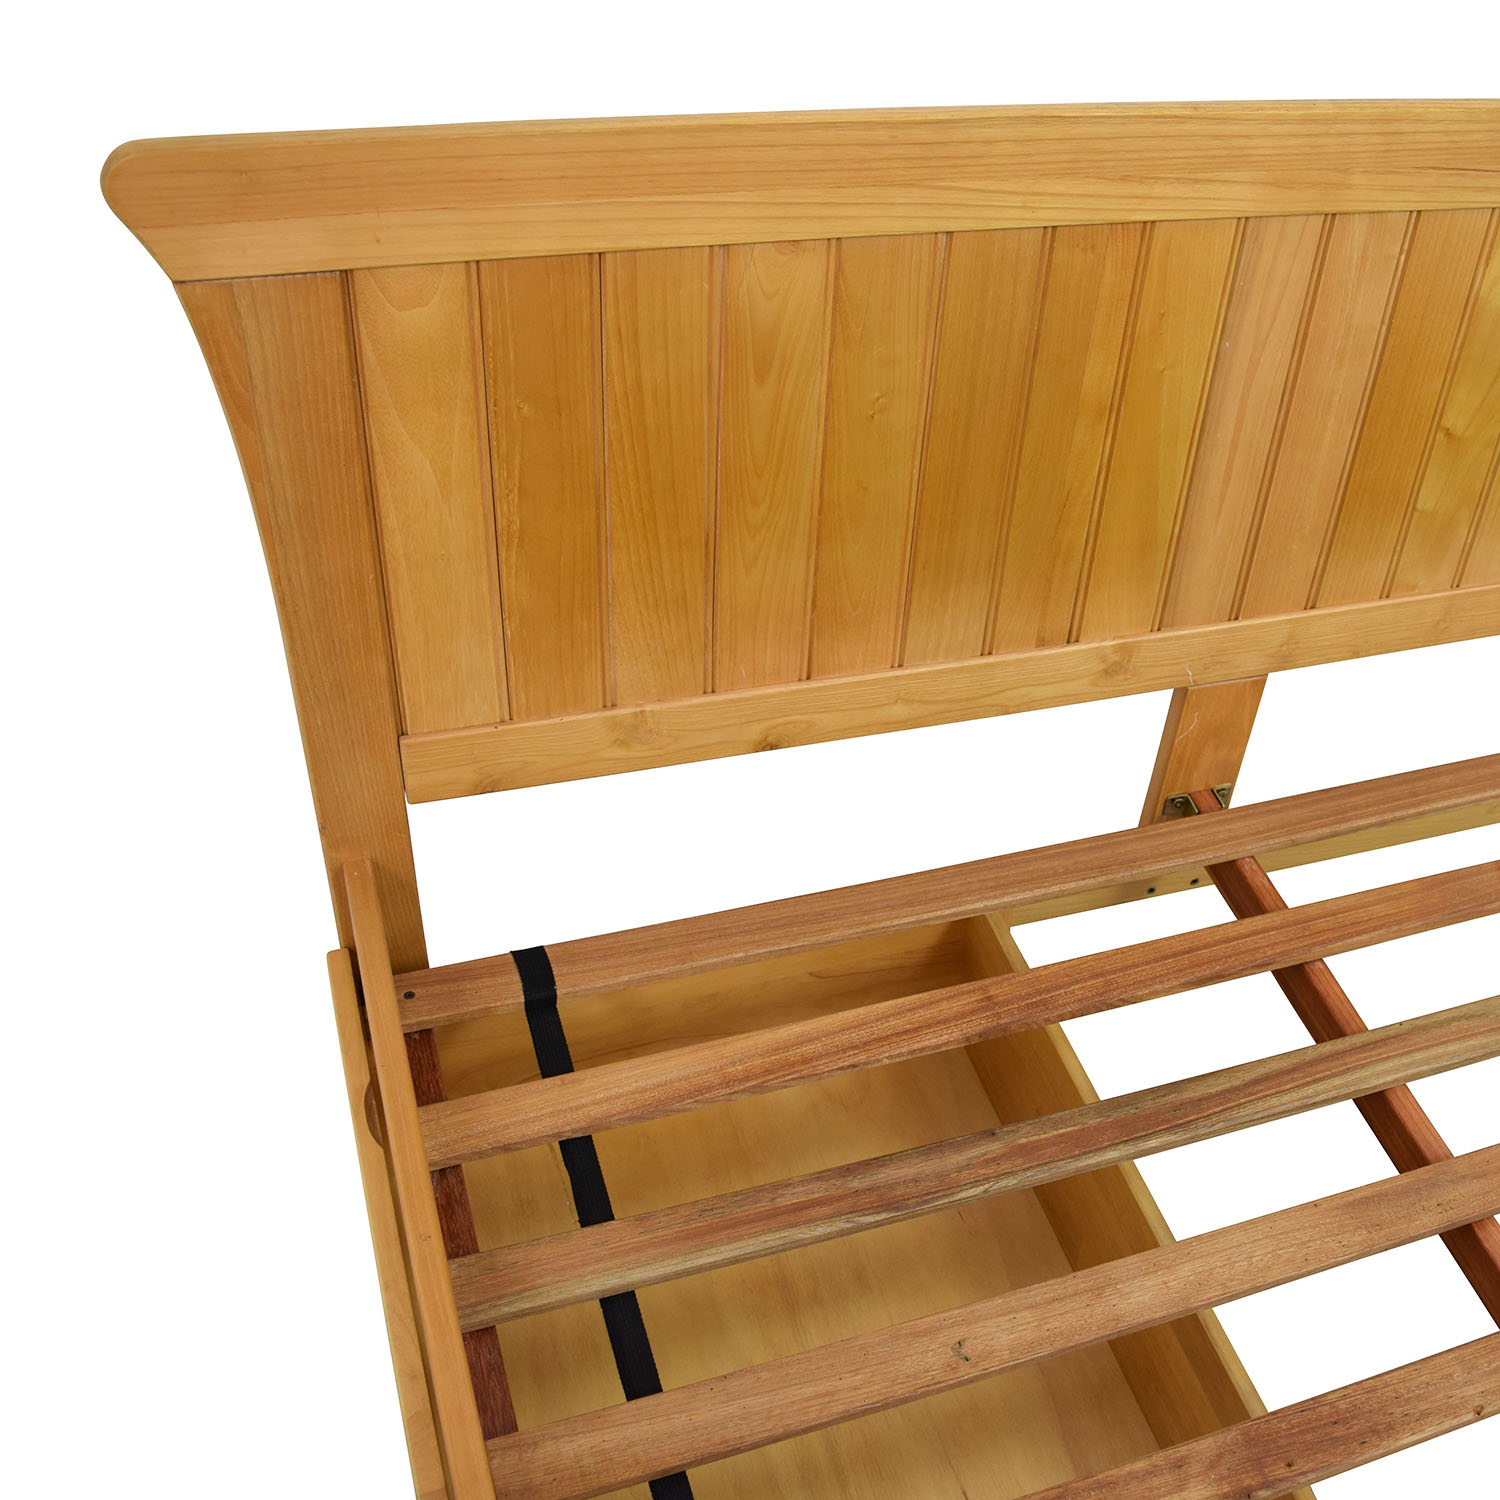 Just Cabinets Coupon 67 OFF Solid Wood Bedframe With